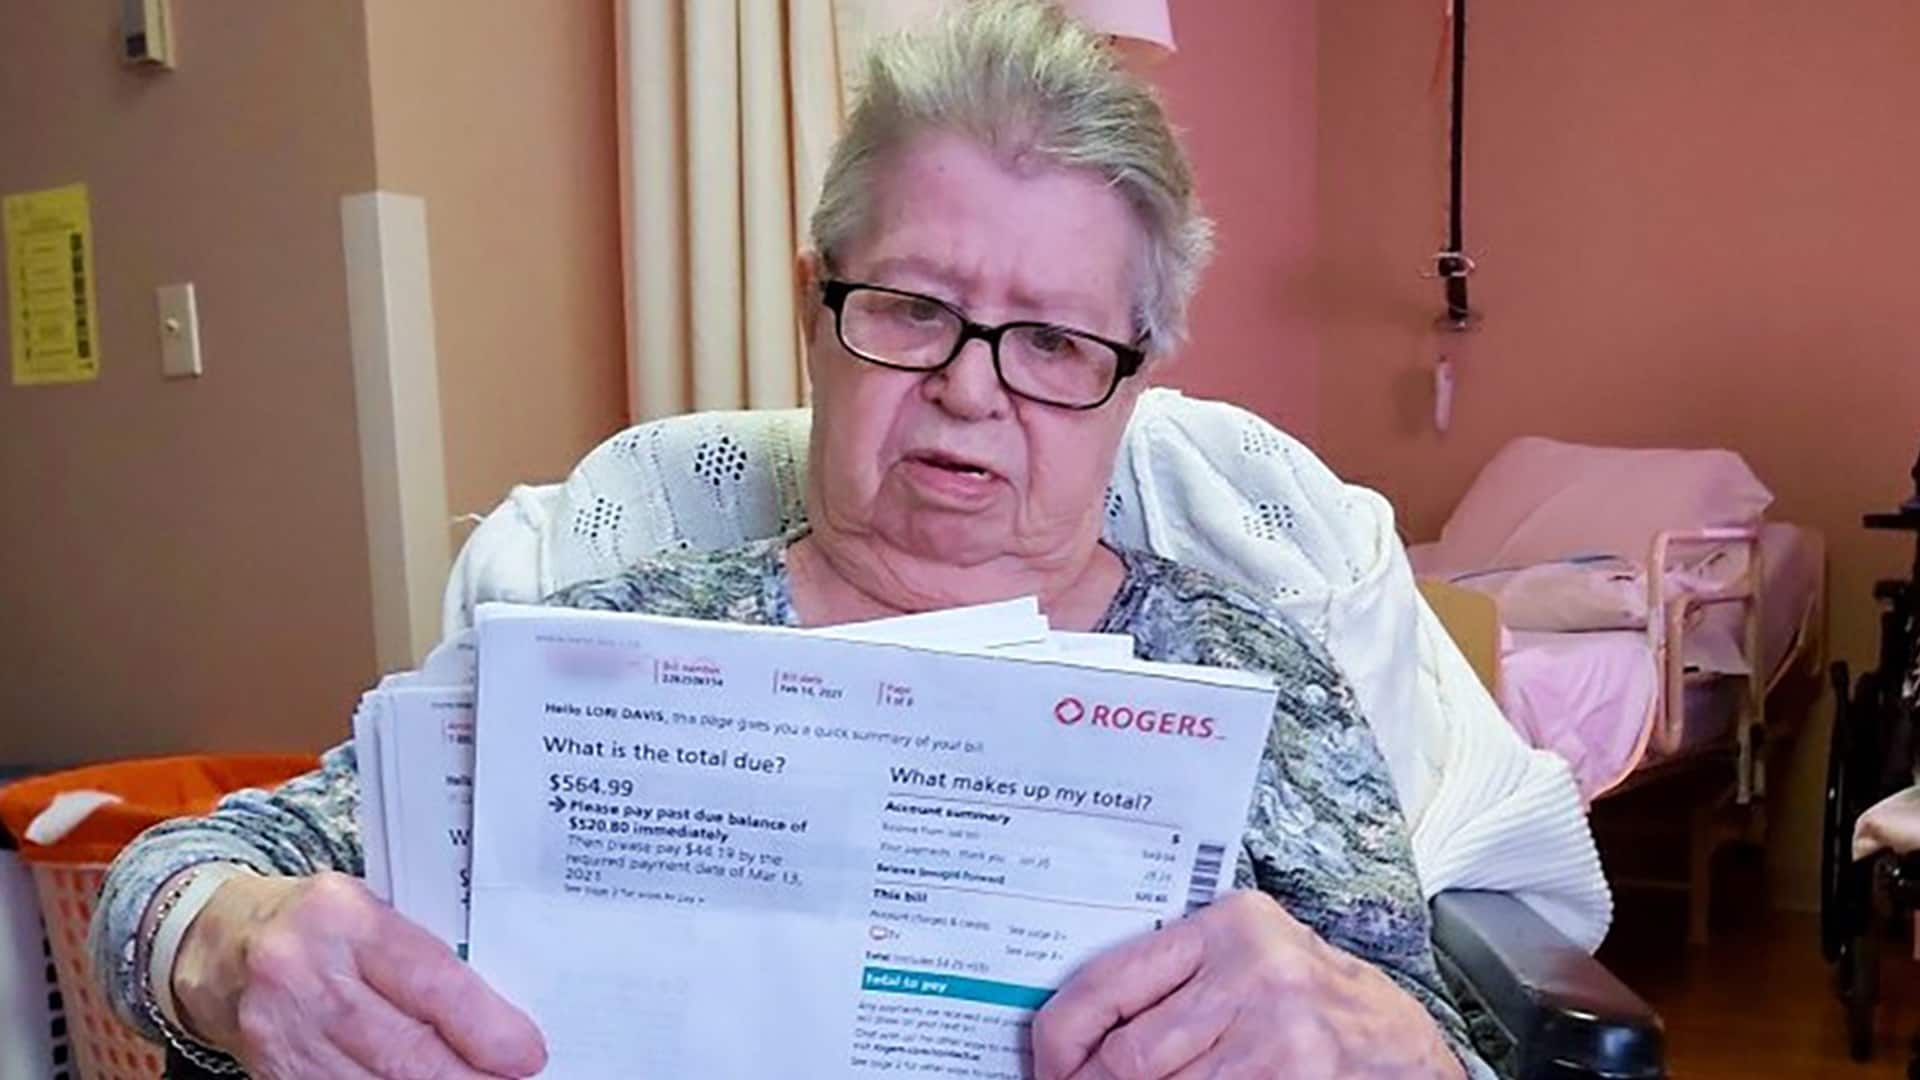 Rogers fines 91-year-old woman unable to return equipment due to lockdown